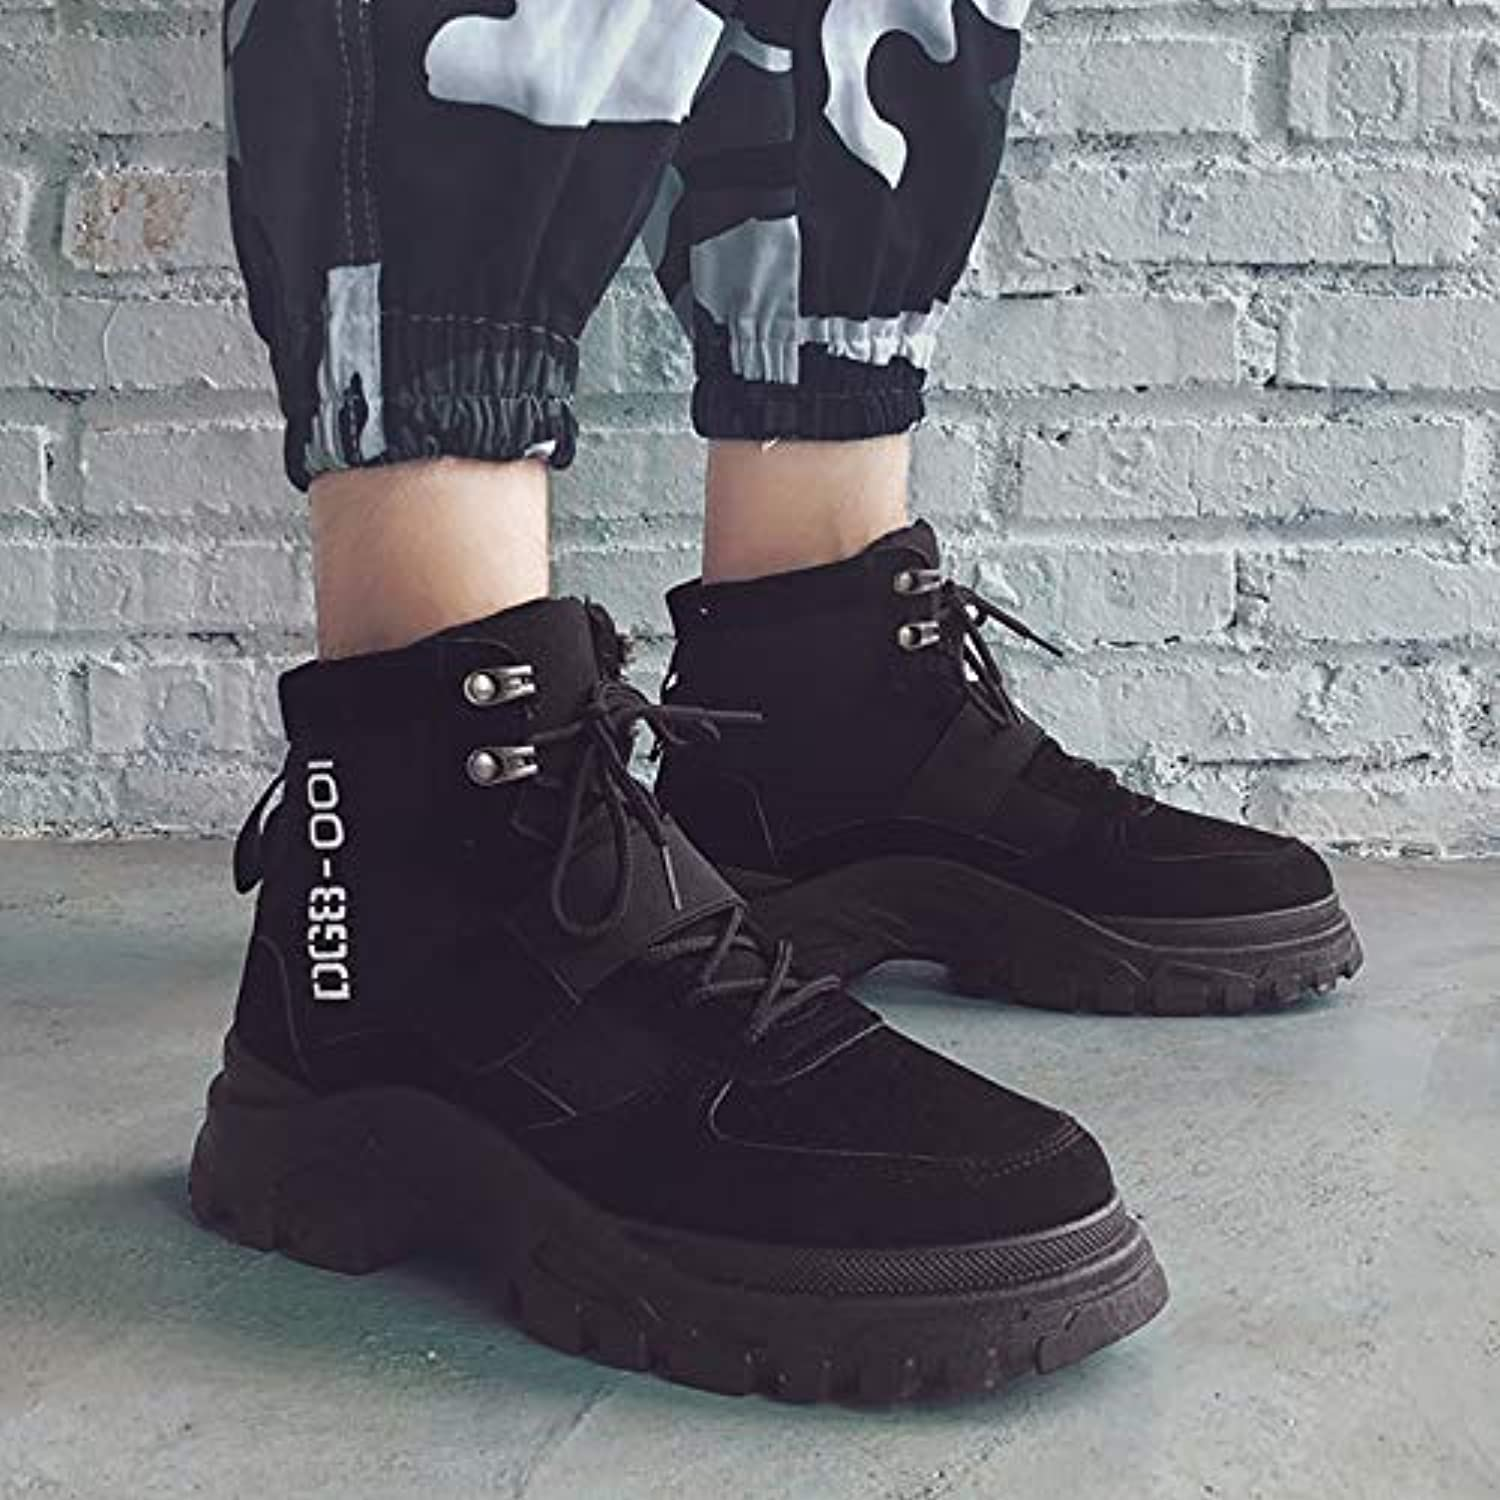 LOVDRAM Boots Men's Martin Boots Men'S Boots High To Help Snow Men'S shoes Winter Cotton Boots Boots Boots Desert Boots Military Boots Wild